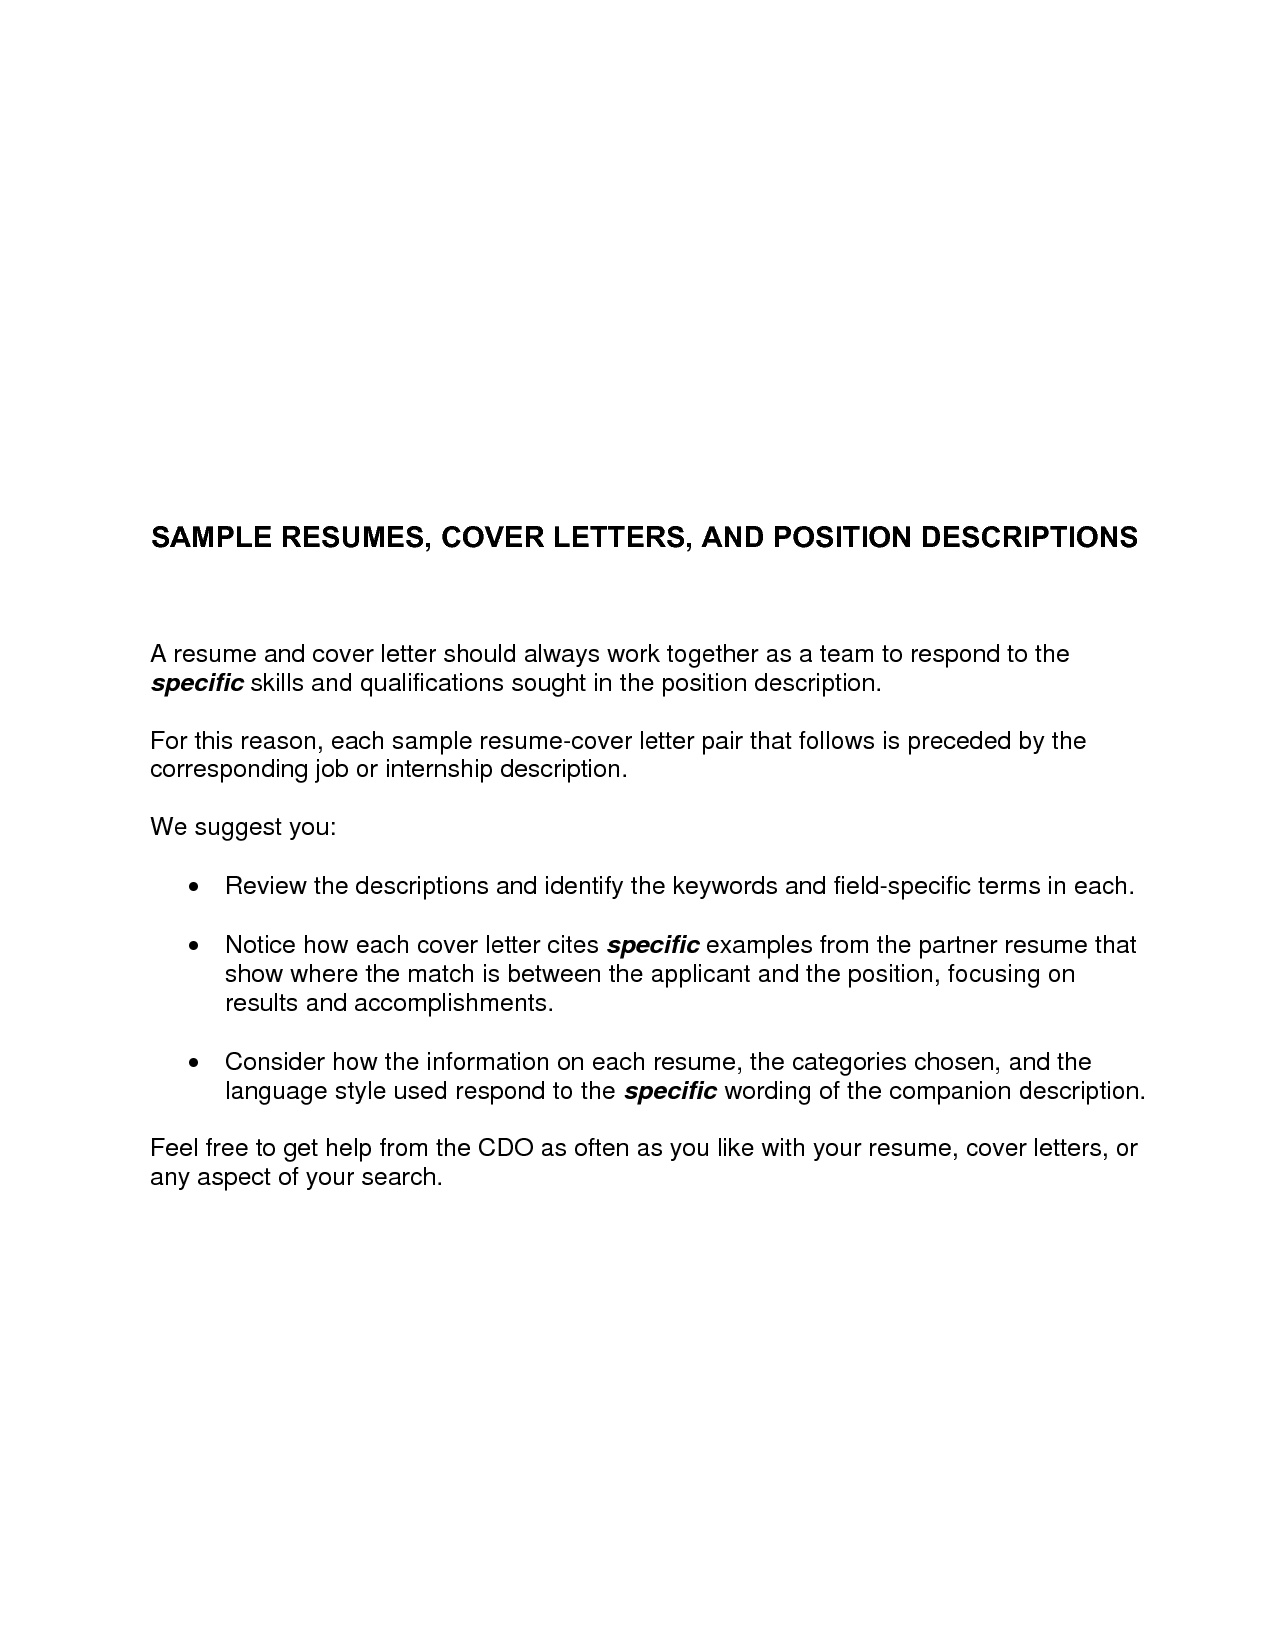 cover letters for resumes best templatesimple cover letter - Good Cover Letter Introduction